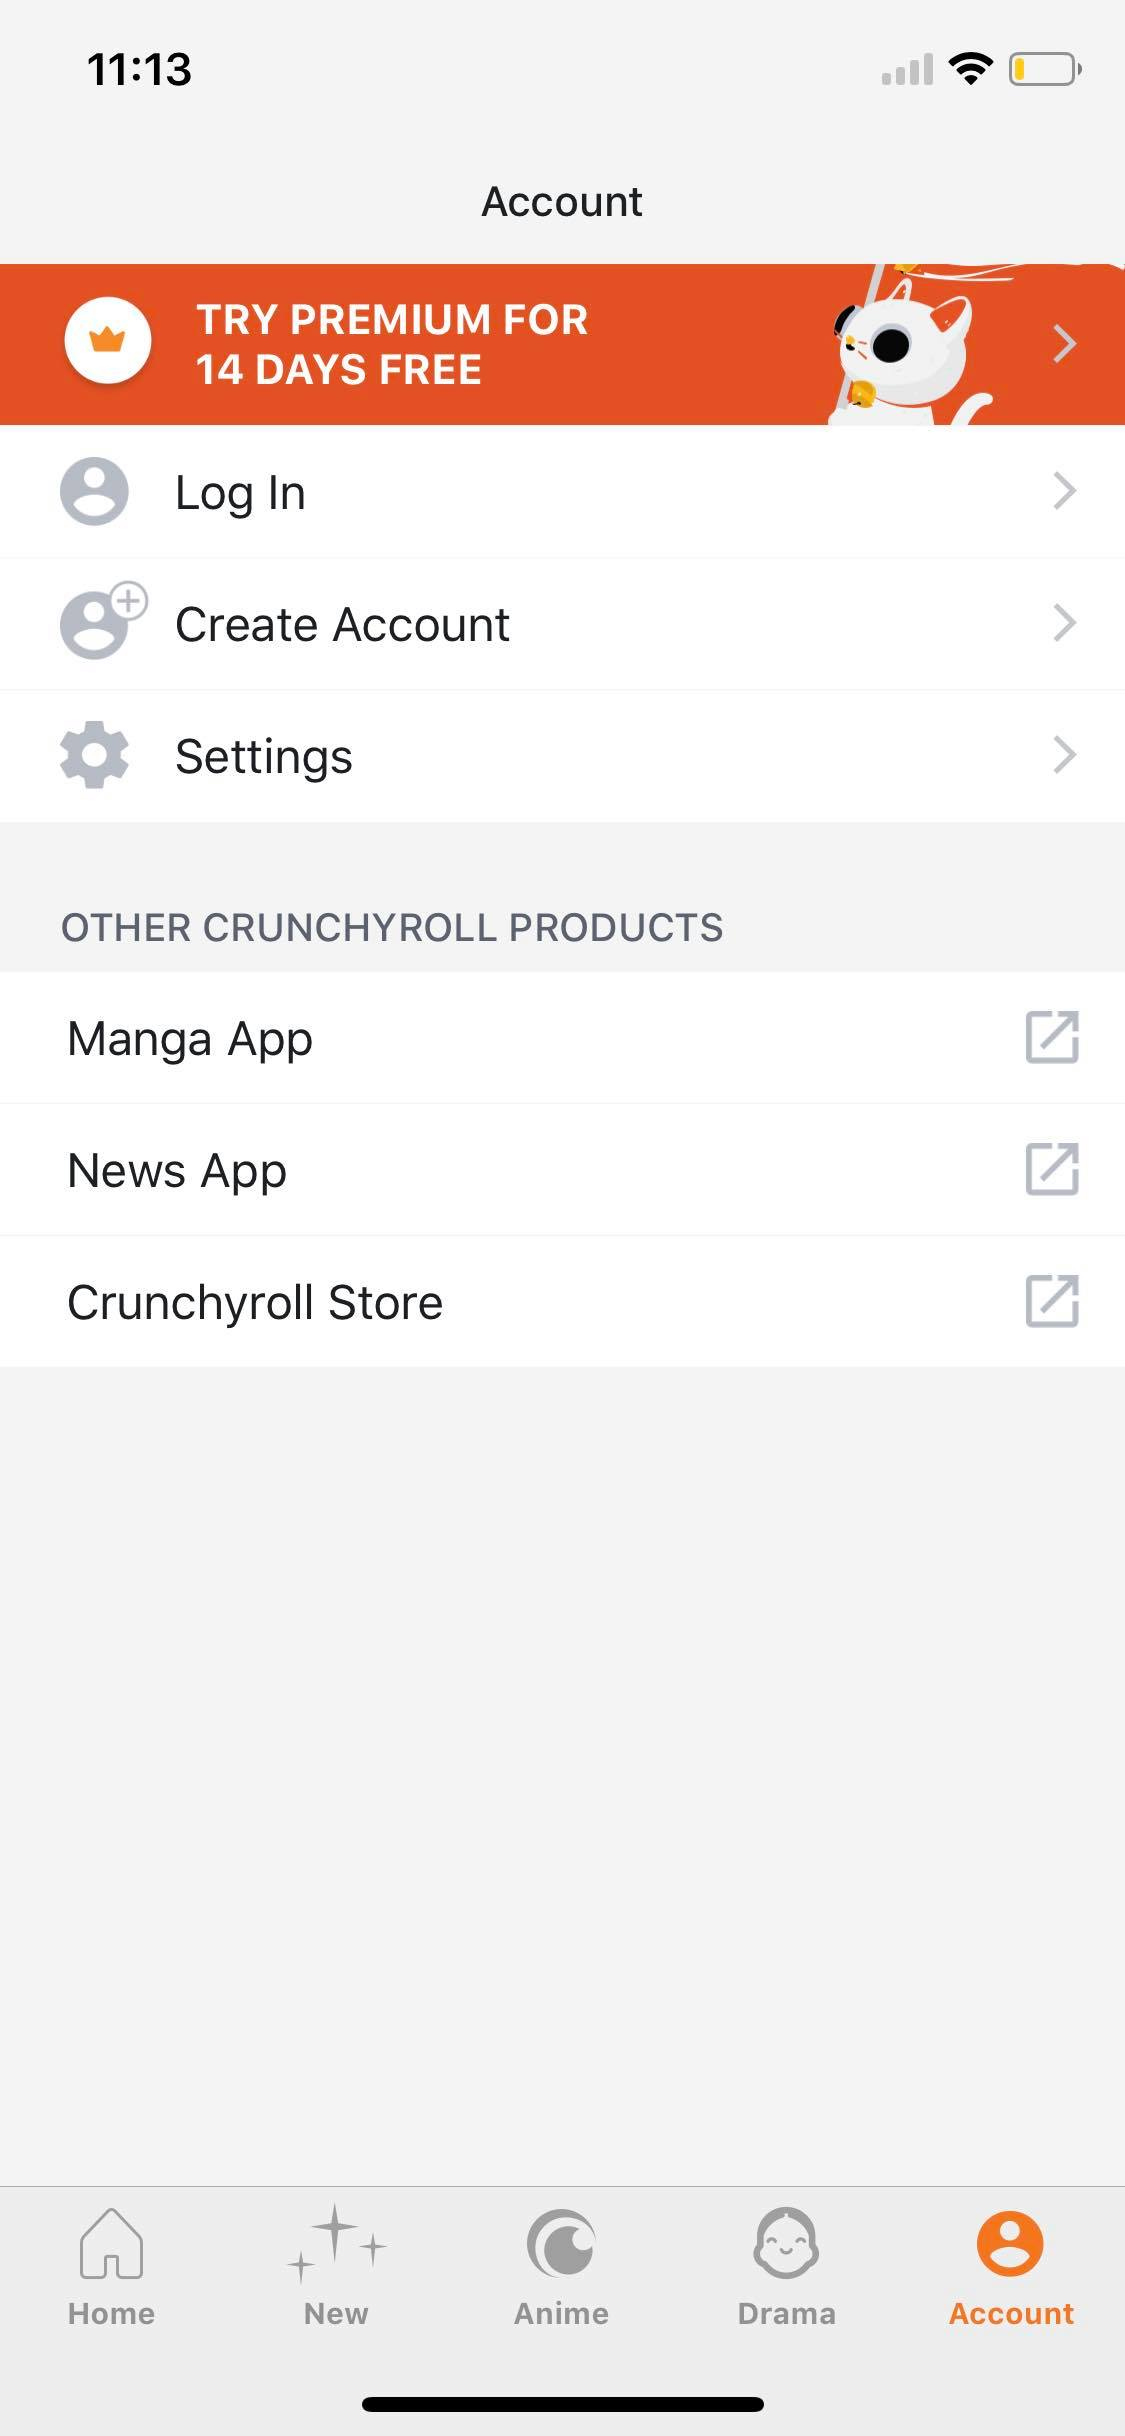 Account on iOS by Crunchy Roll from UIGarage